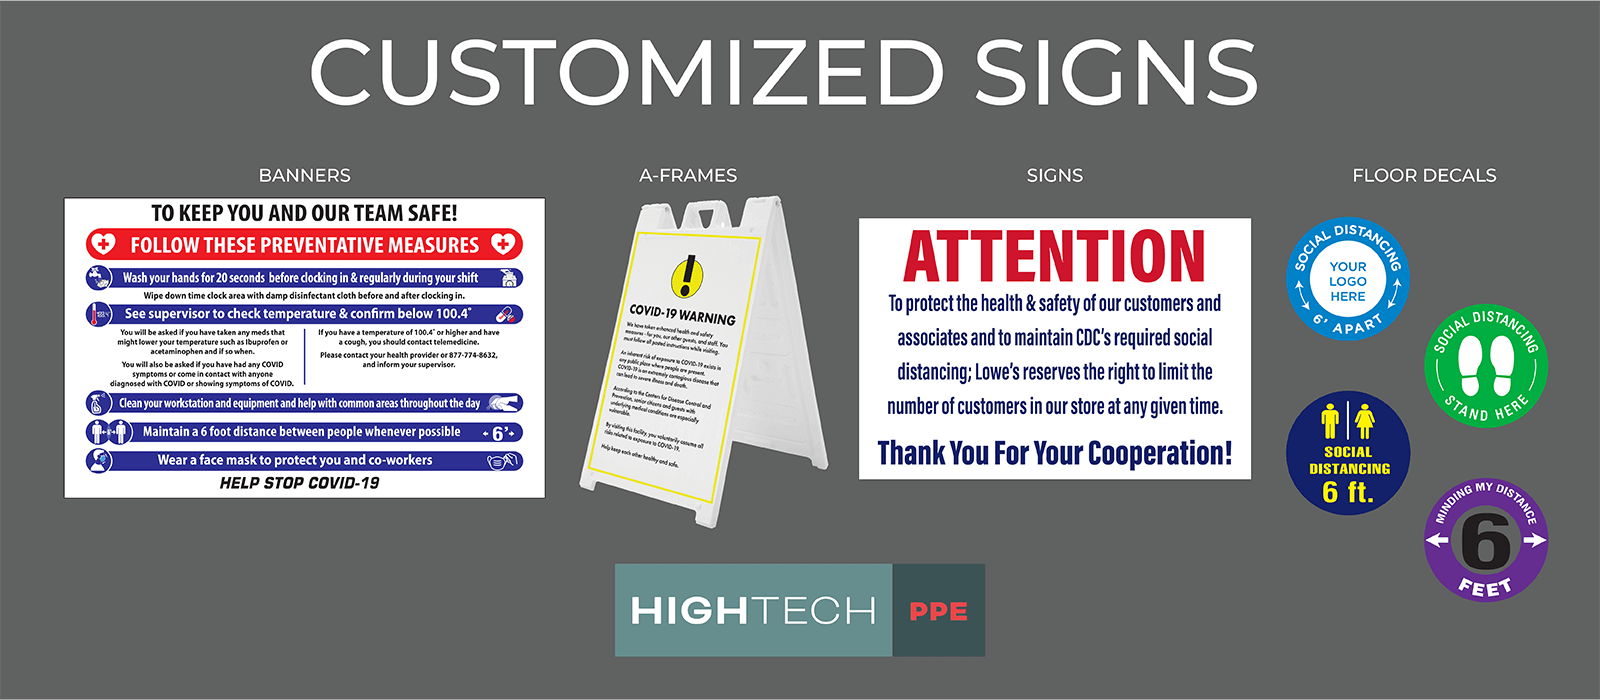 Hightech Customized Signs